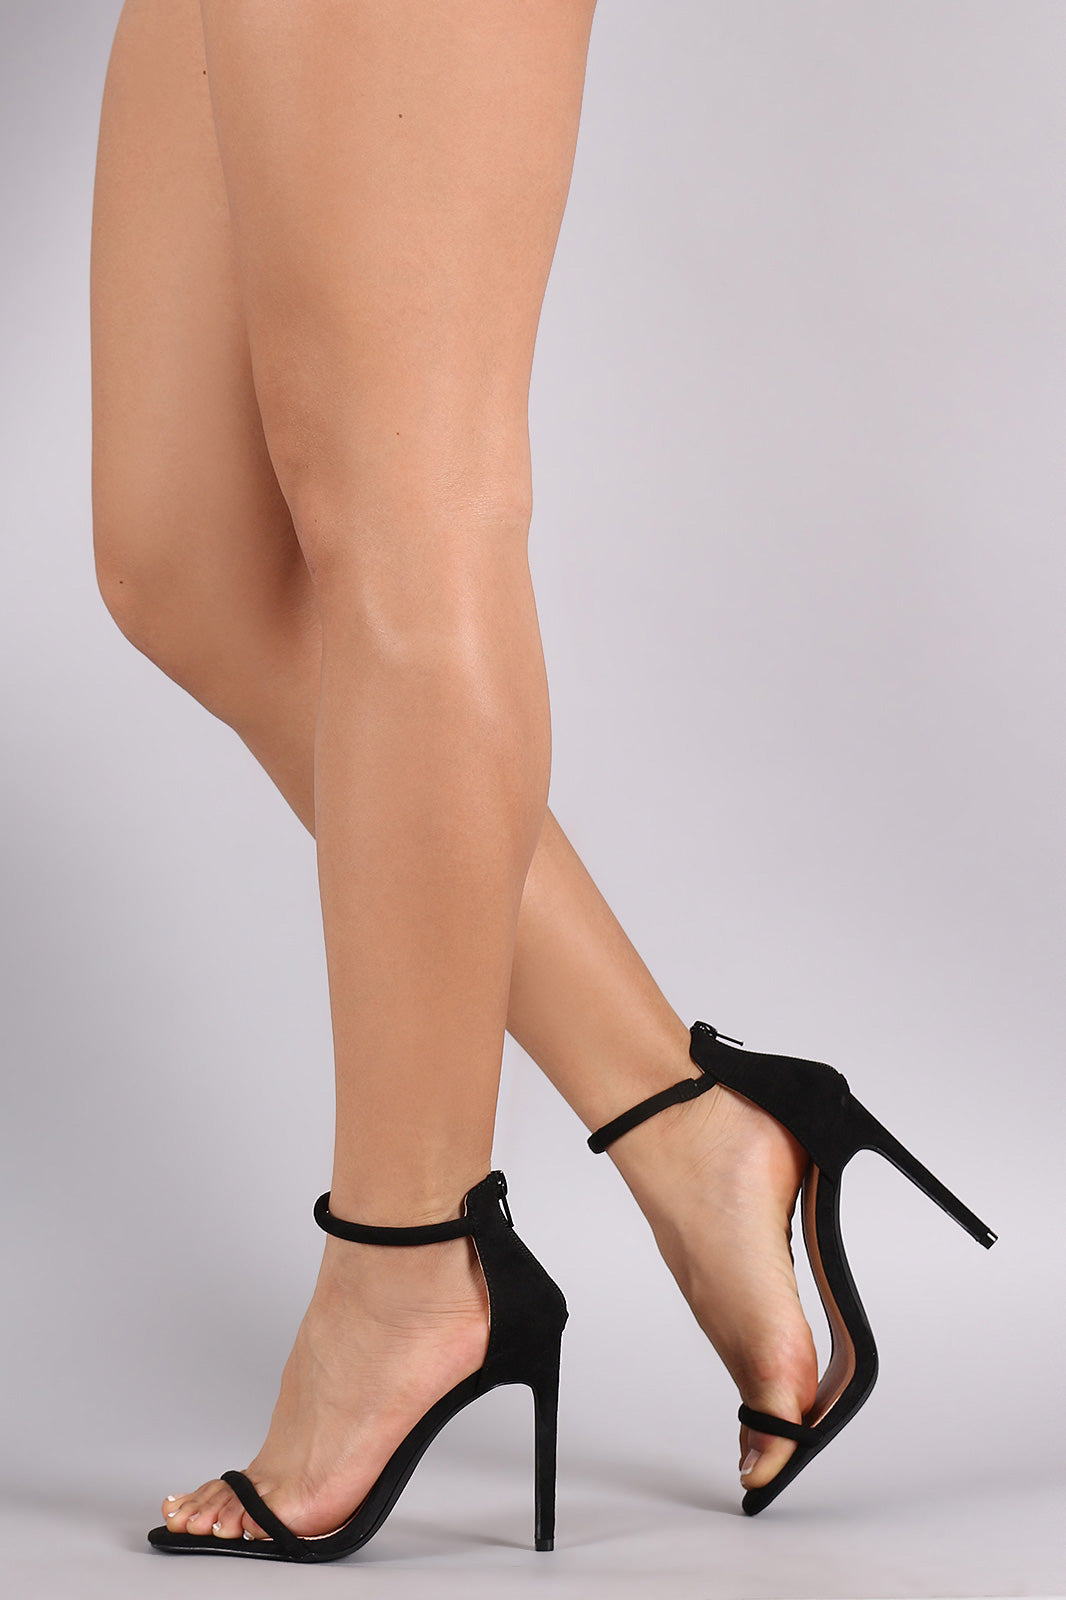 Liliana Suede Double Strap Open Toe Stiletto Heel - Thick 'N' Curvy Shop - 14